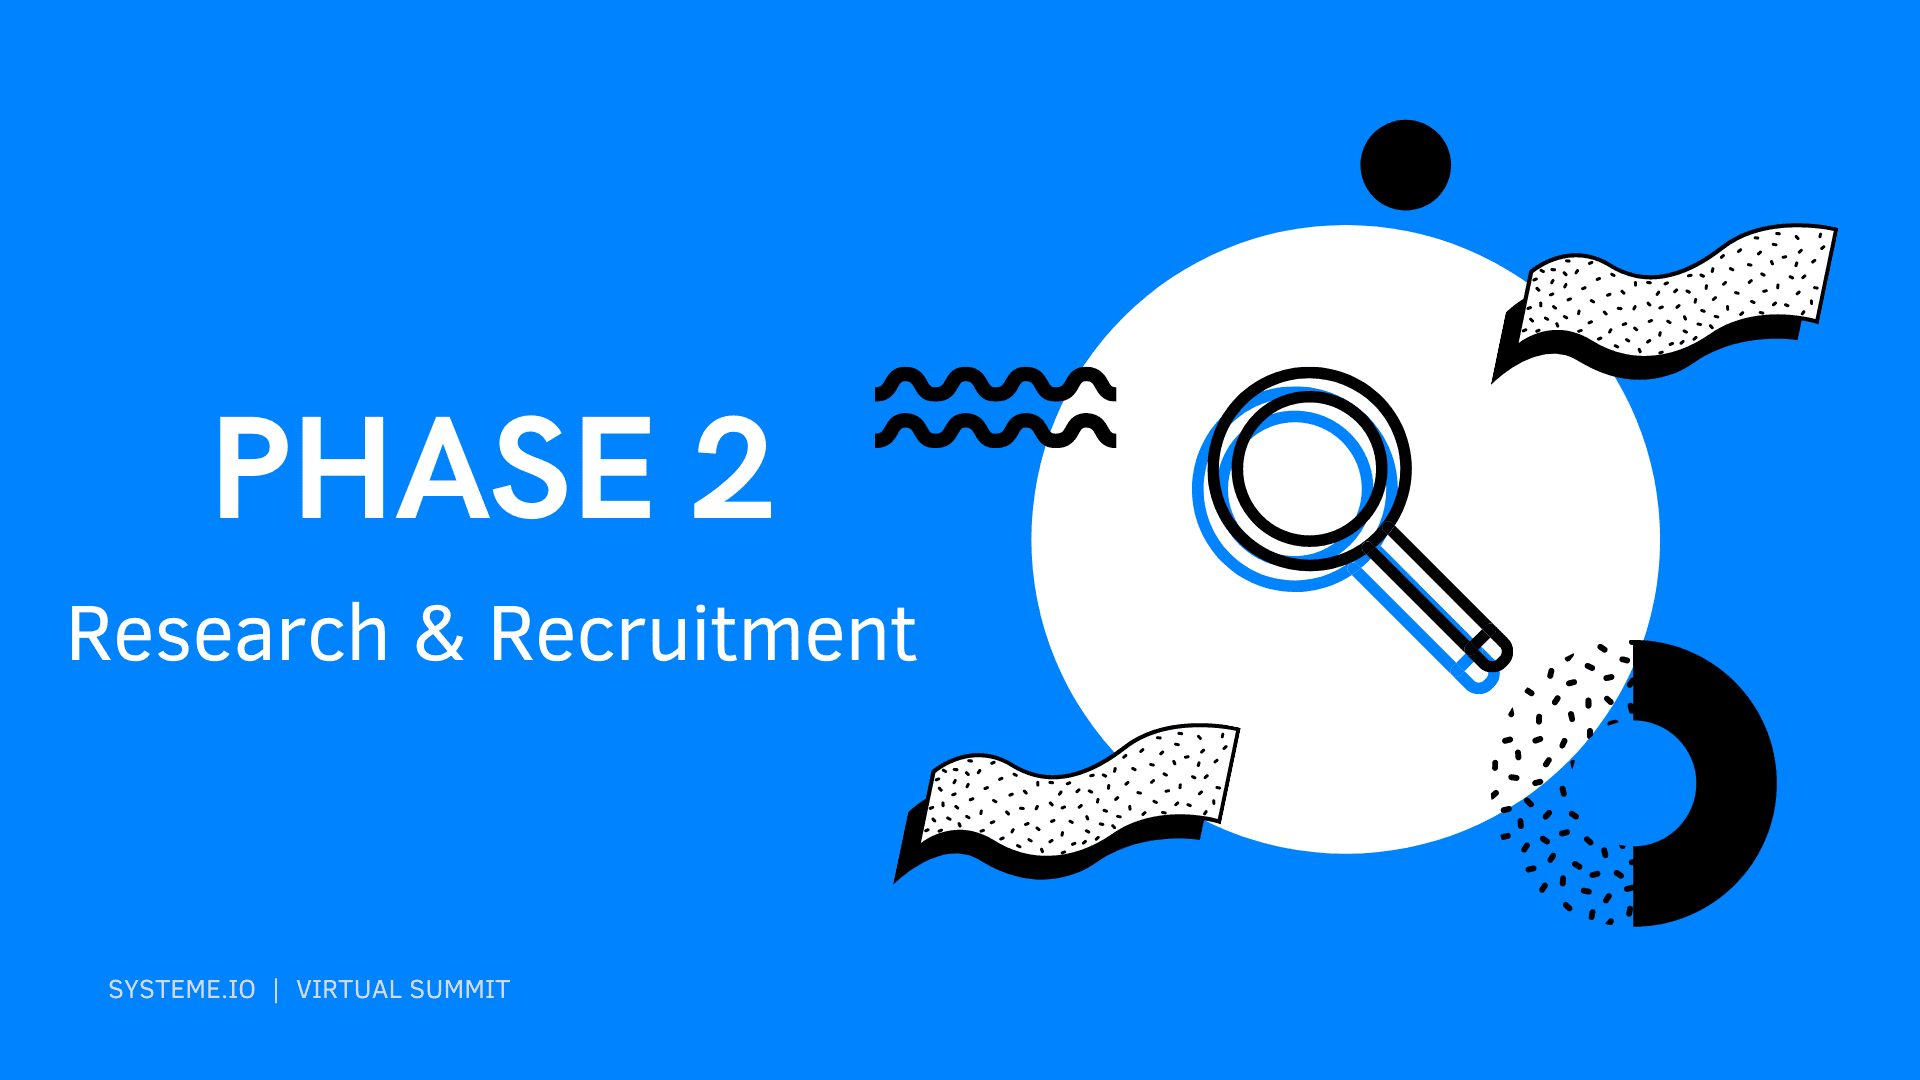 Phase 2 — Research and Recruitment